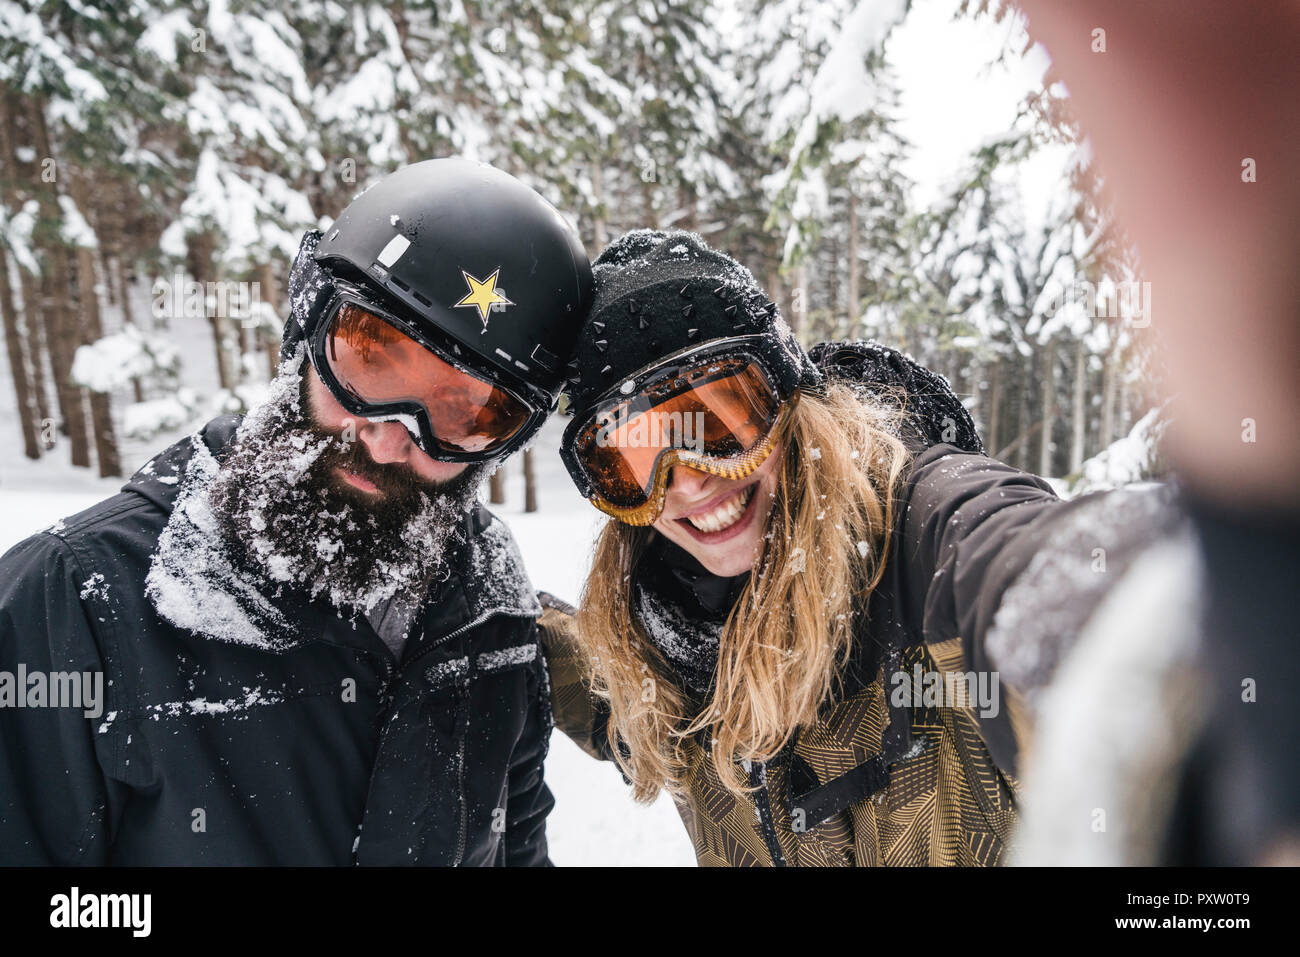 Selfie of smiling couple in skiwear in winter forest - Stock Image